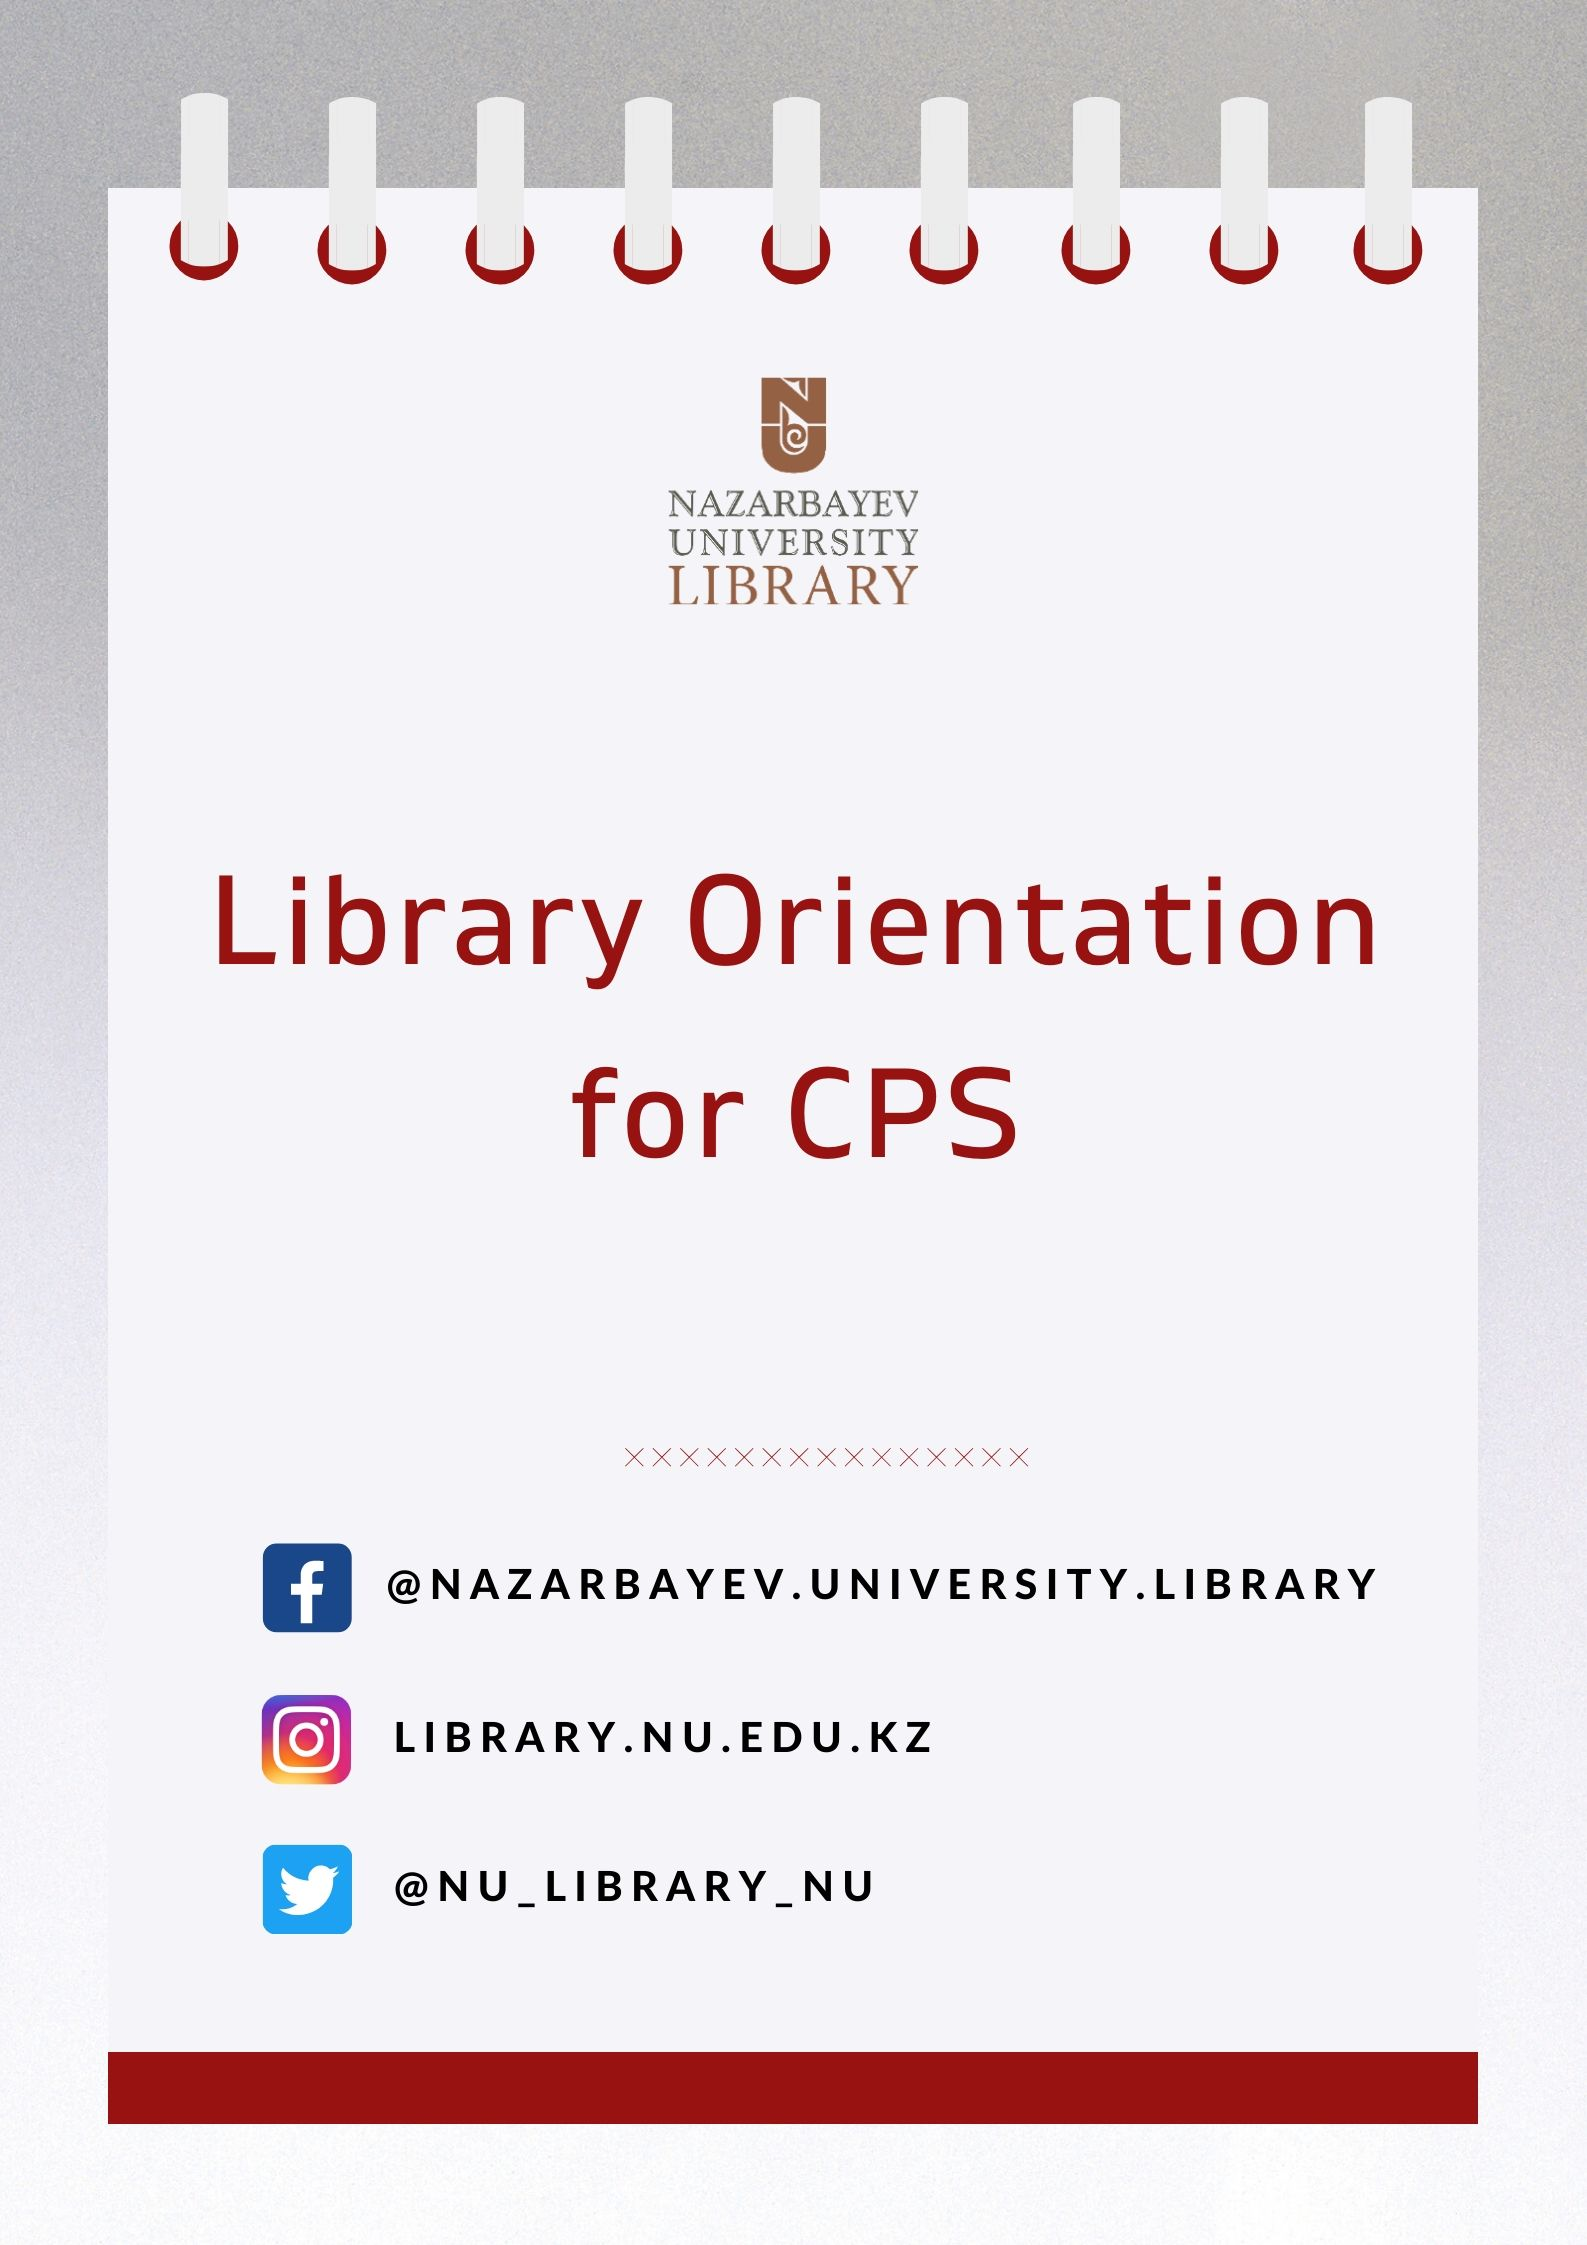 [CPS] Library Orientation for NUZYP